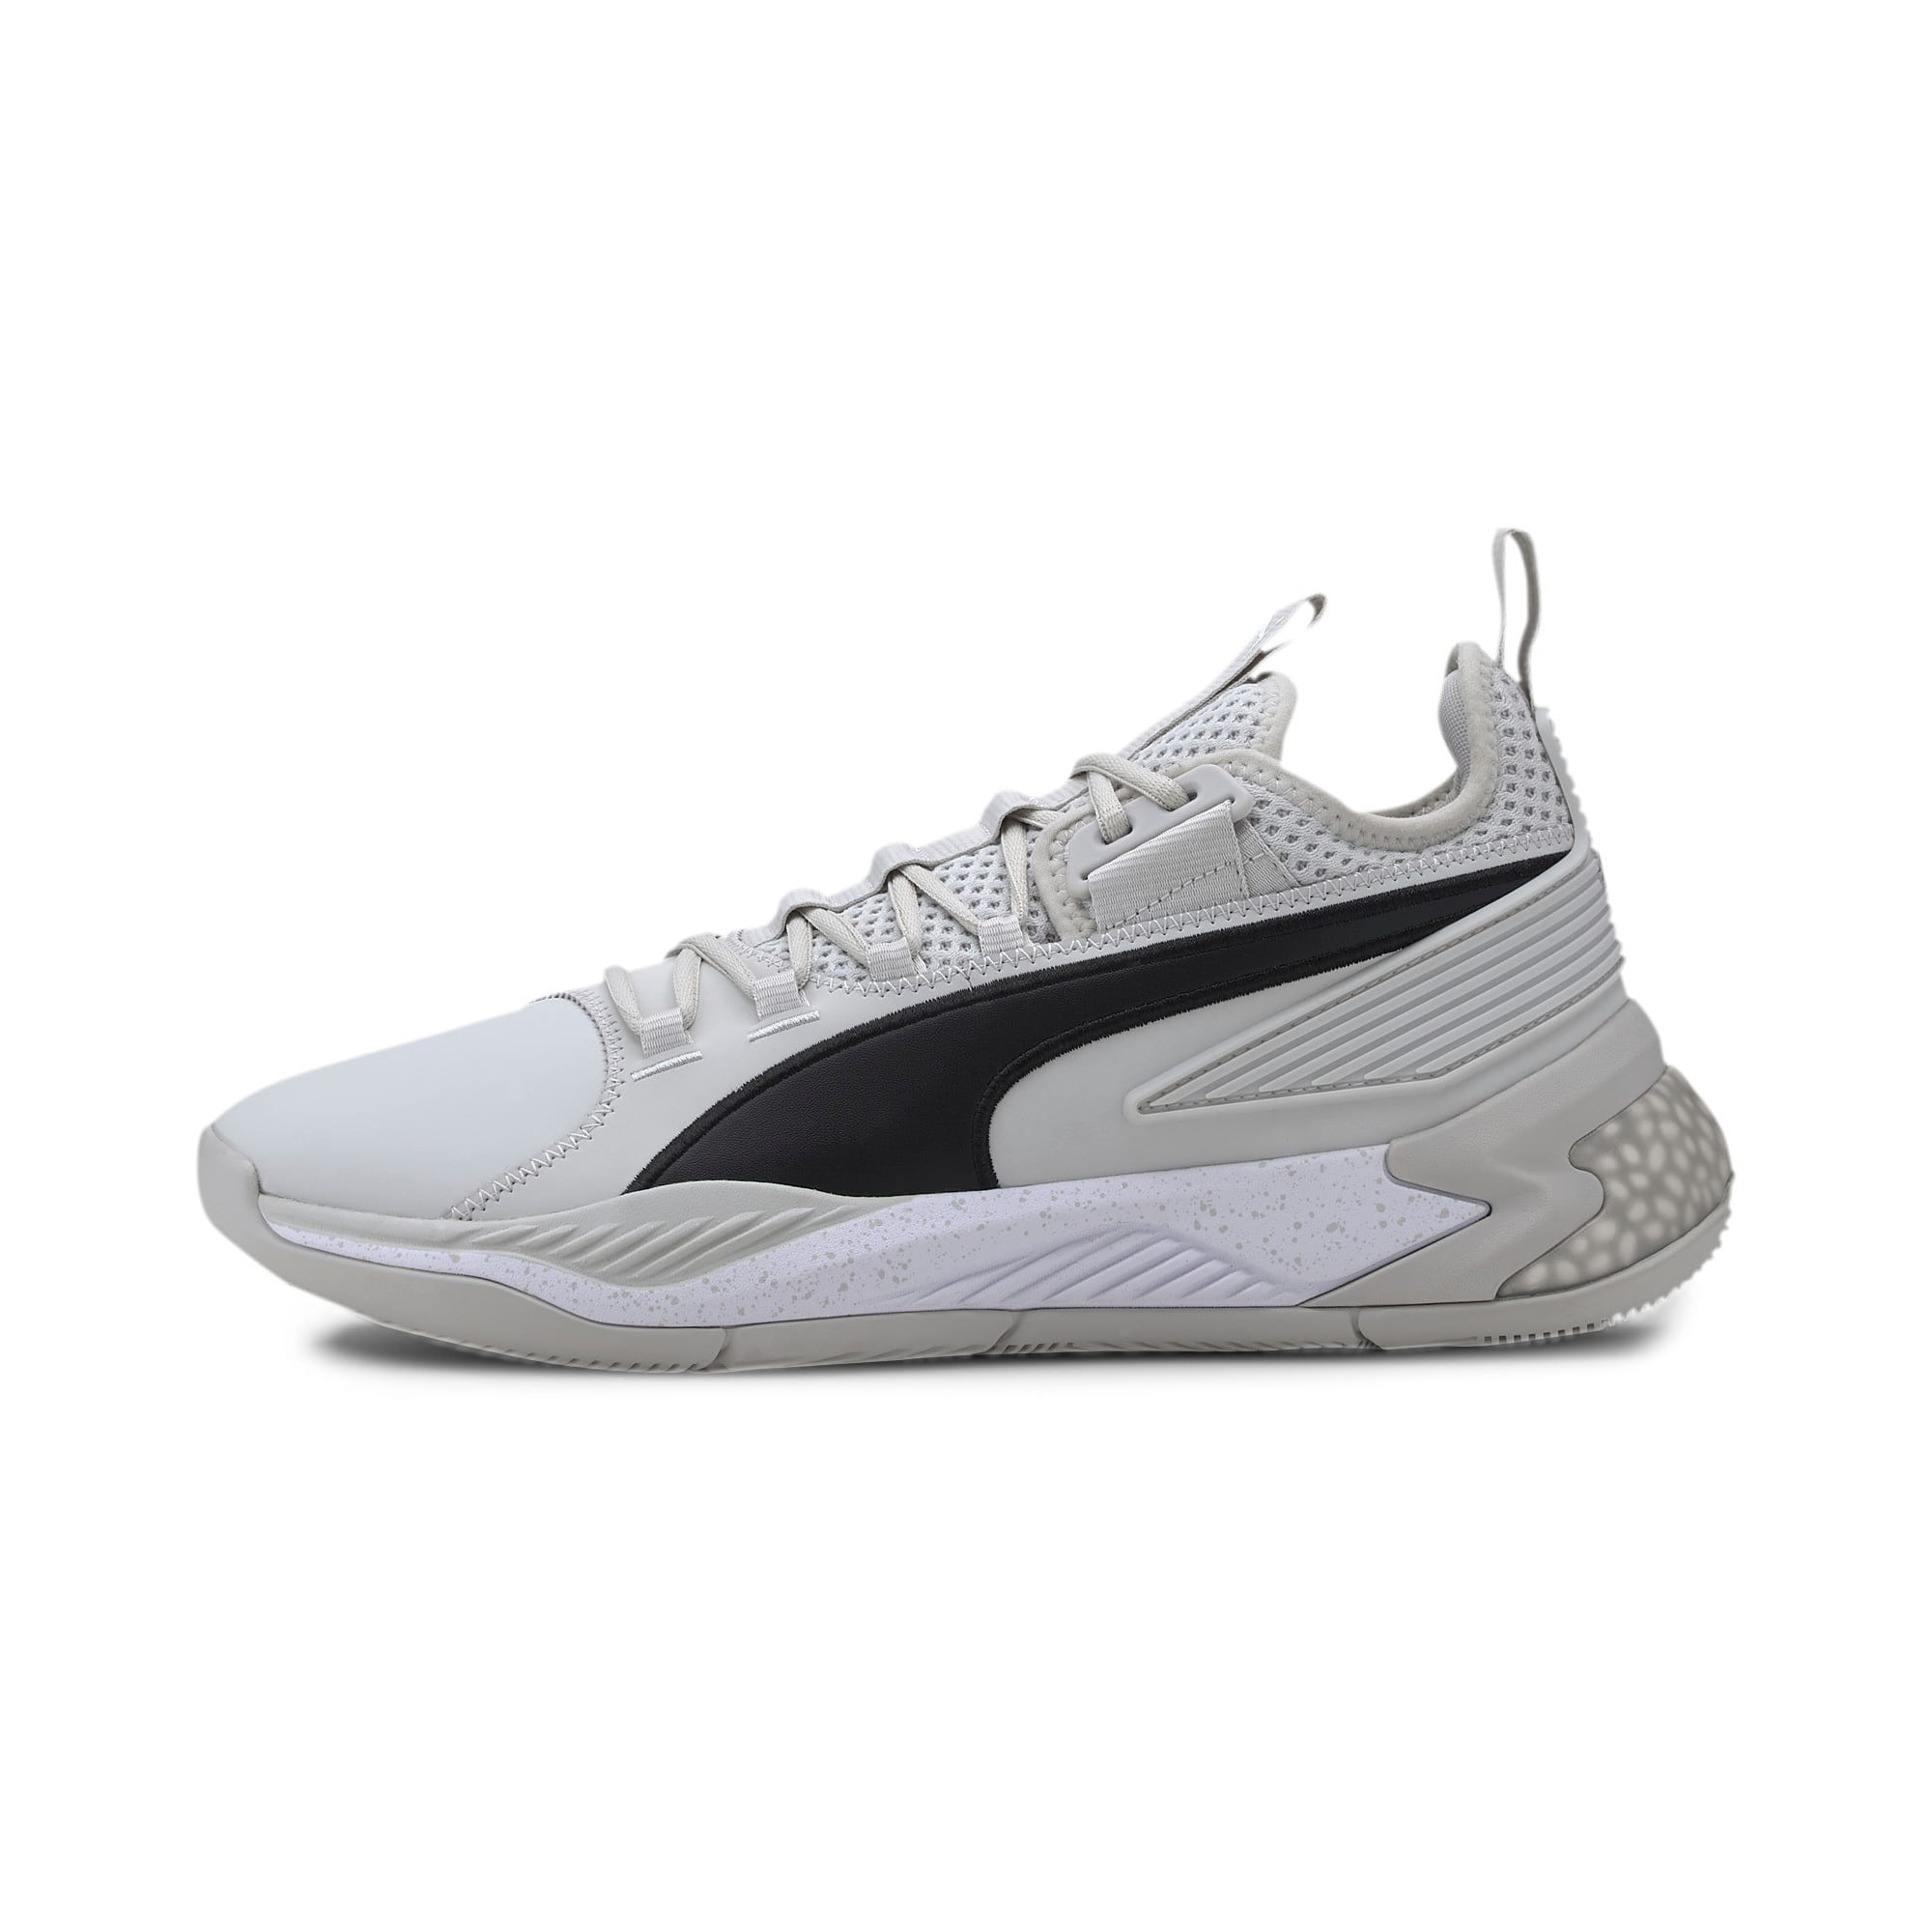 Anteprima 1 di Uproar Core Men's Basketball Shoes, Glacier Gray, medio